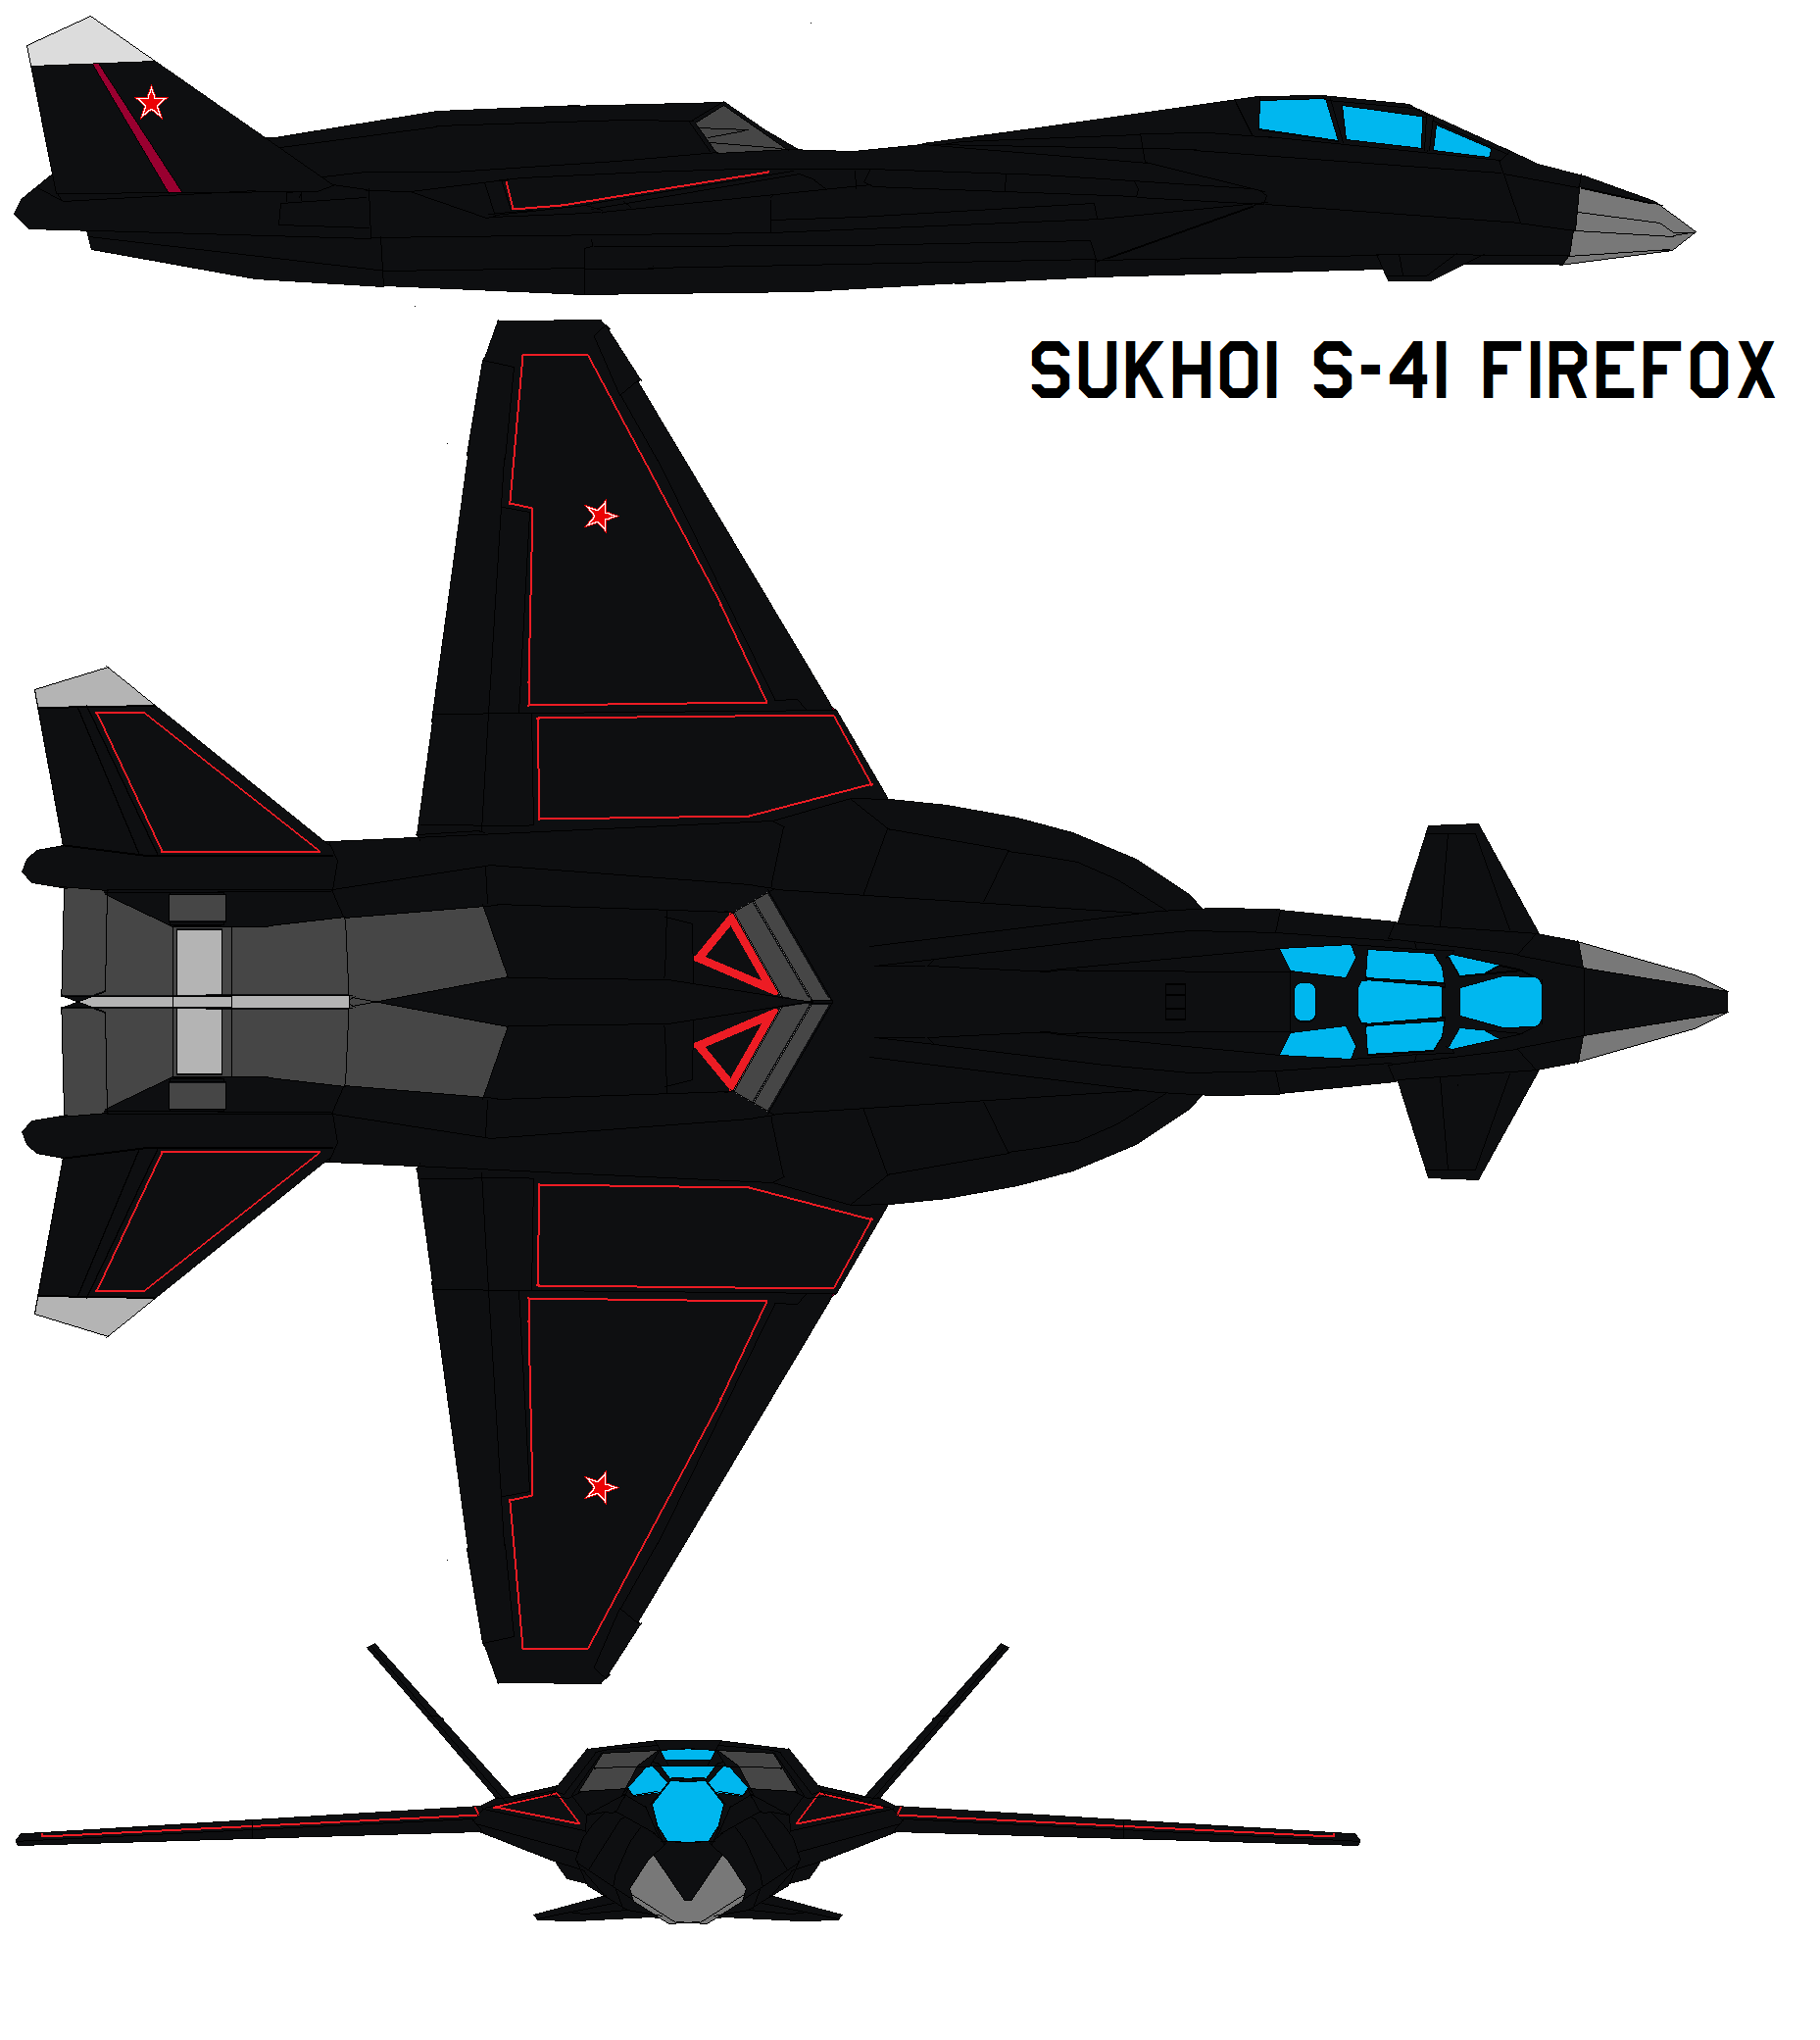 Sukhoi S-41 Firefox By Bagera3005 On DeviantArt